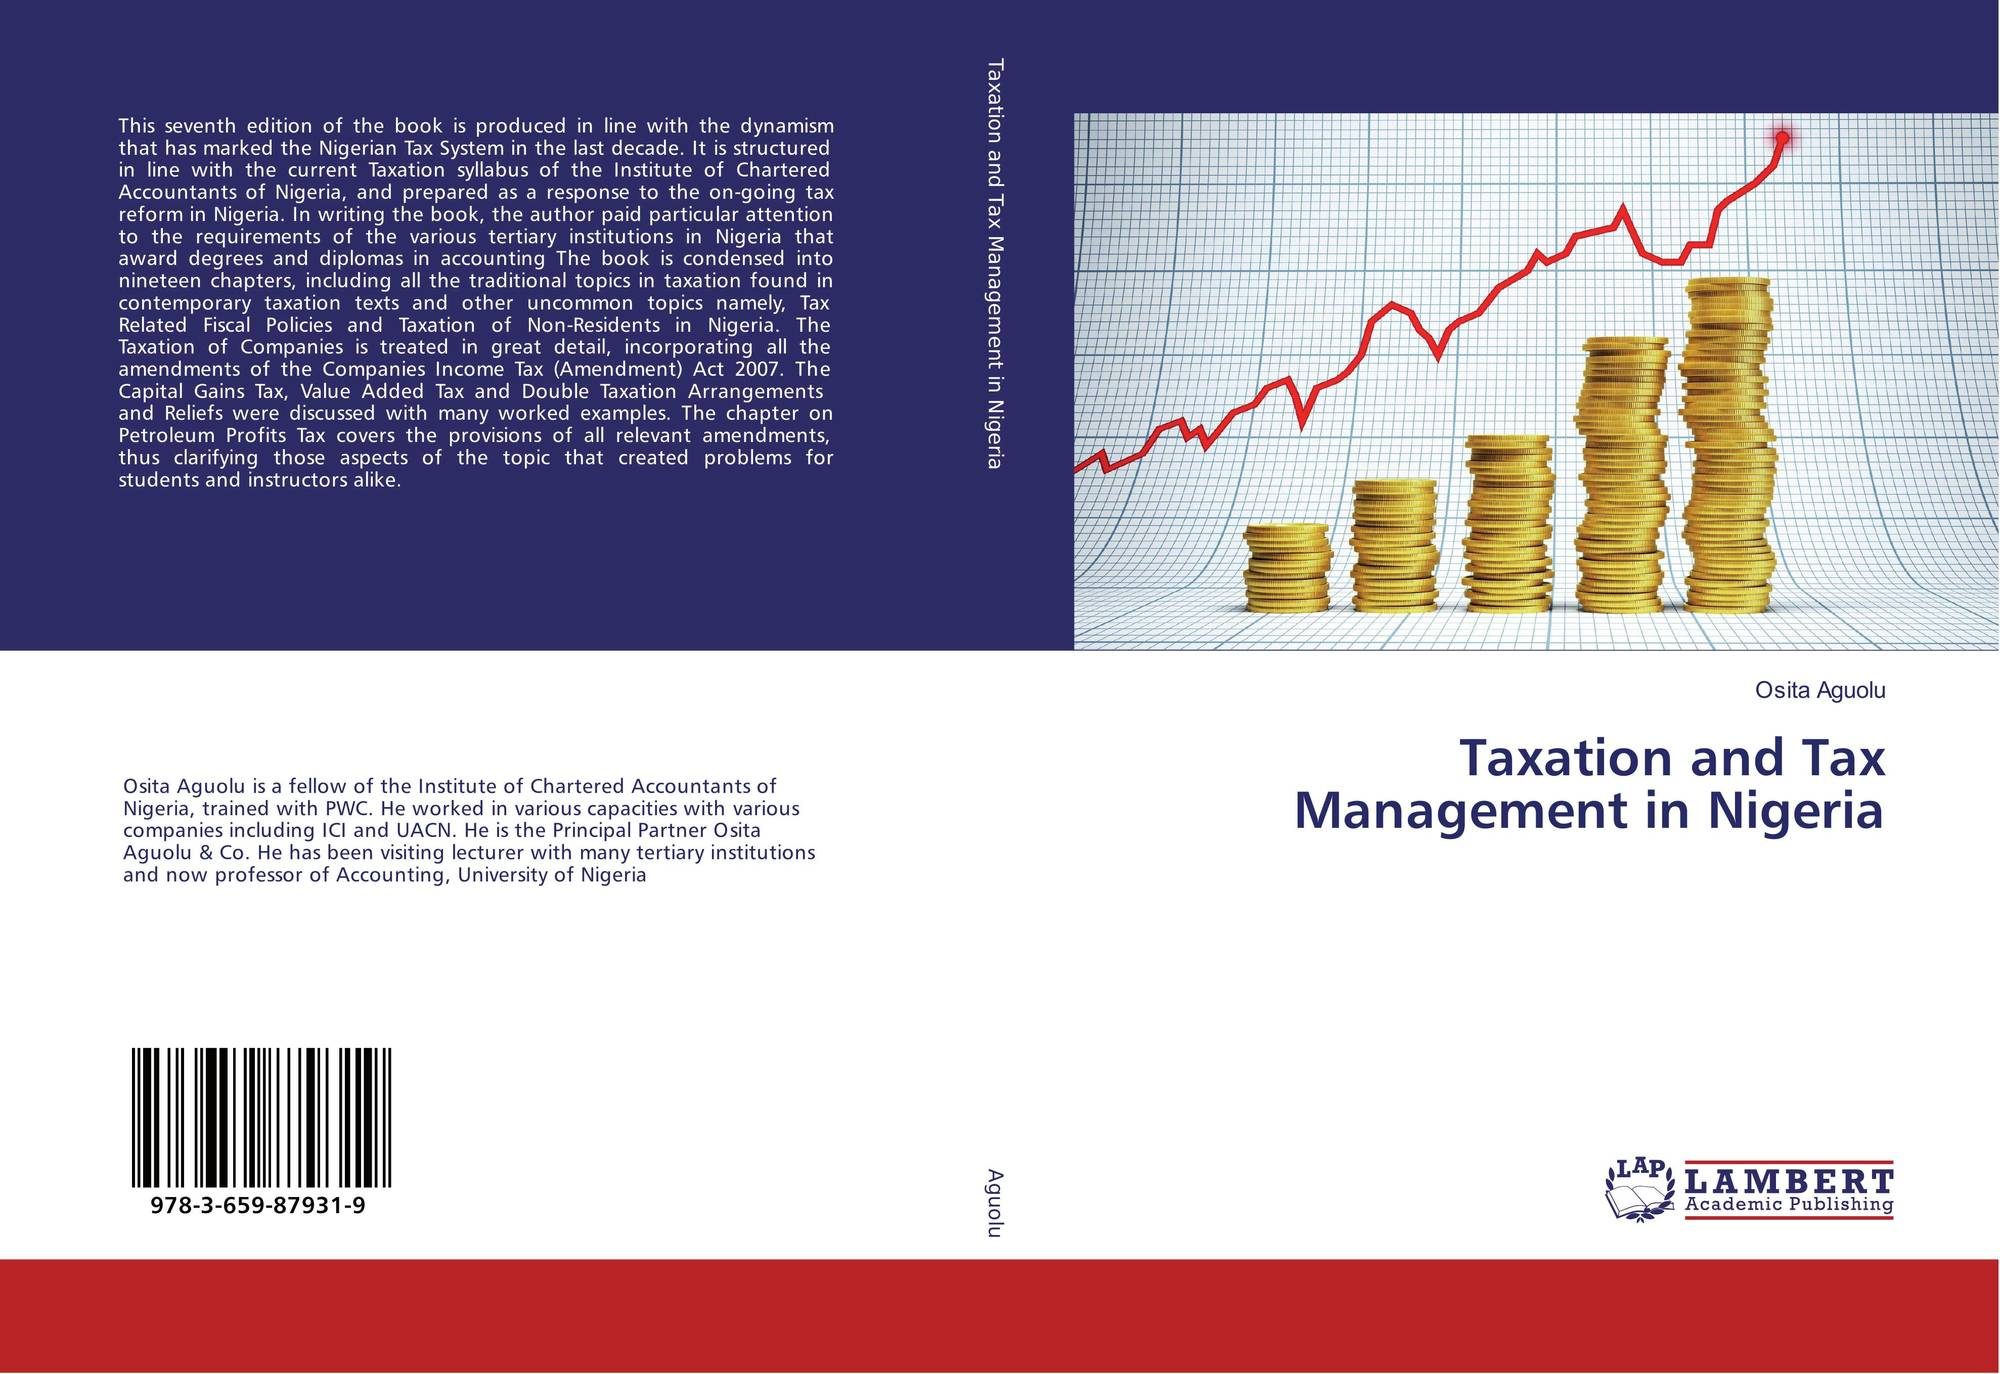 the impact of taxation in nigerian economy The impact of value added tax on the nigerian economic growth nigerian economy became urgent taxation forms the most important source of.